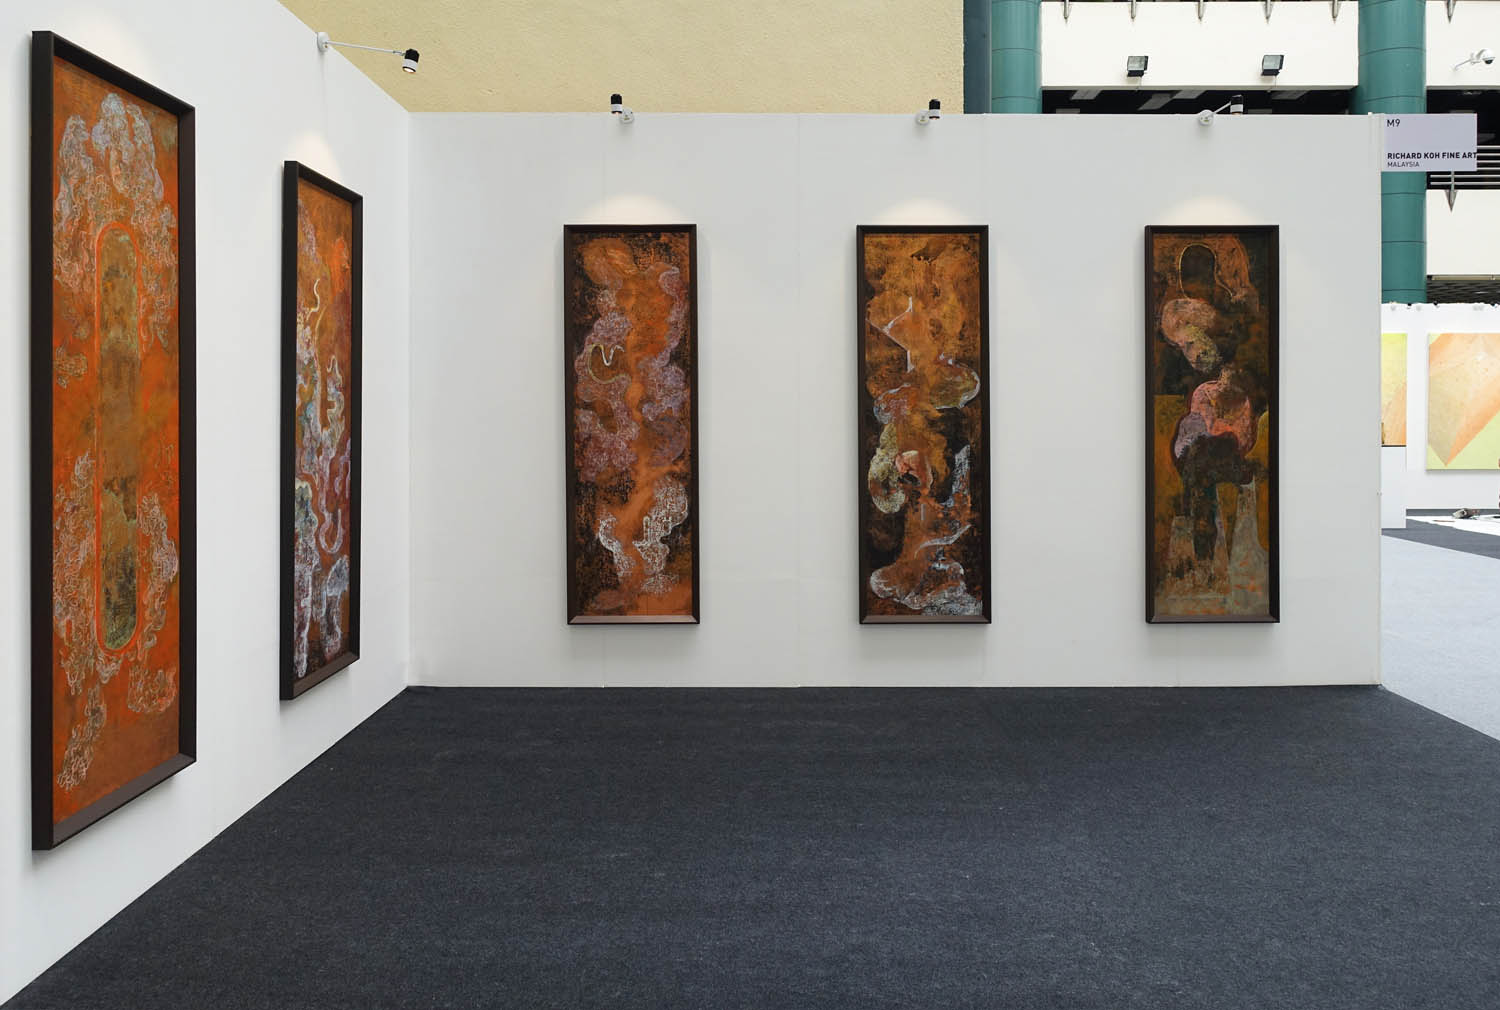 star2 – Art Expo Malaysia: Come in, sit down, have tea, and engage